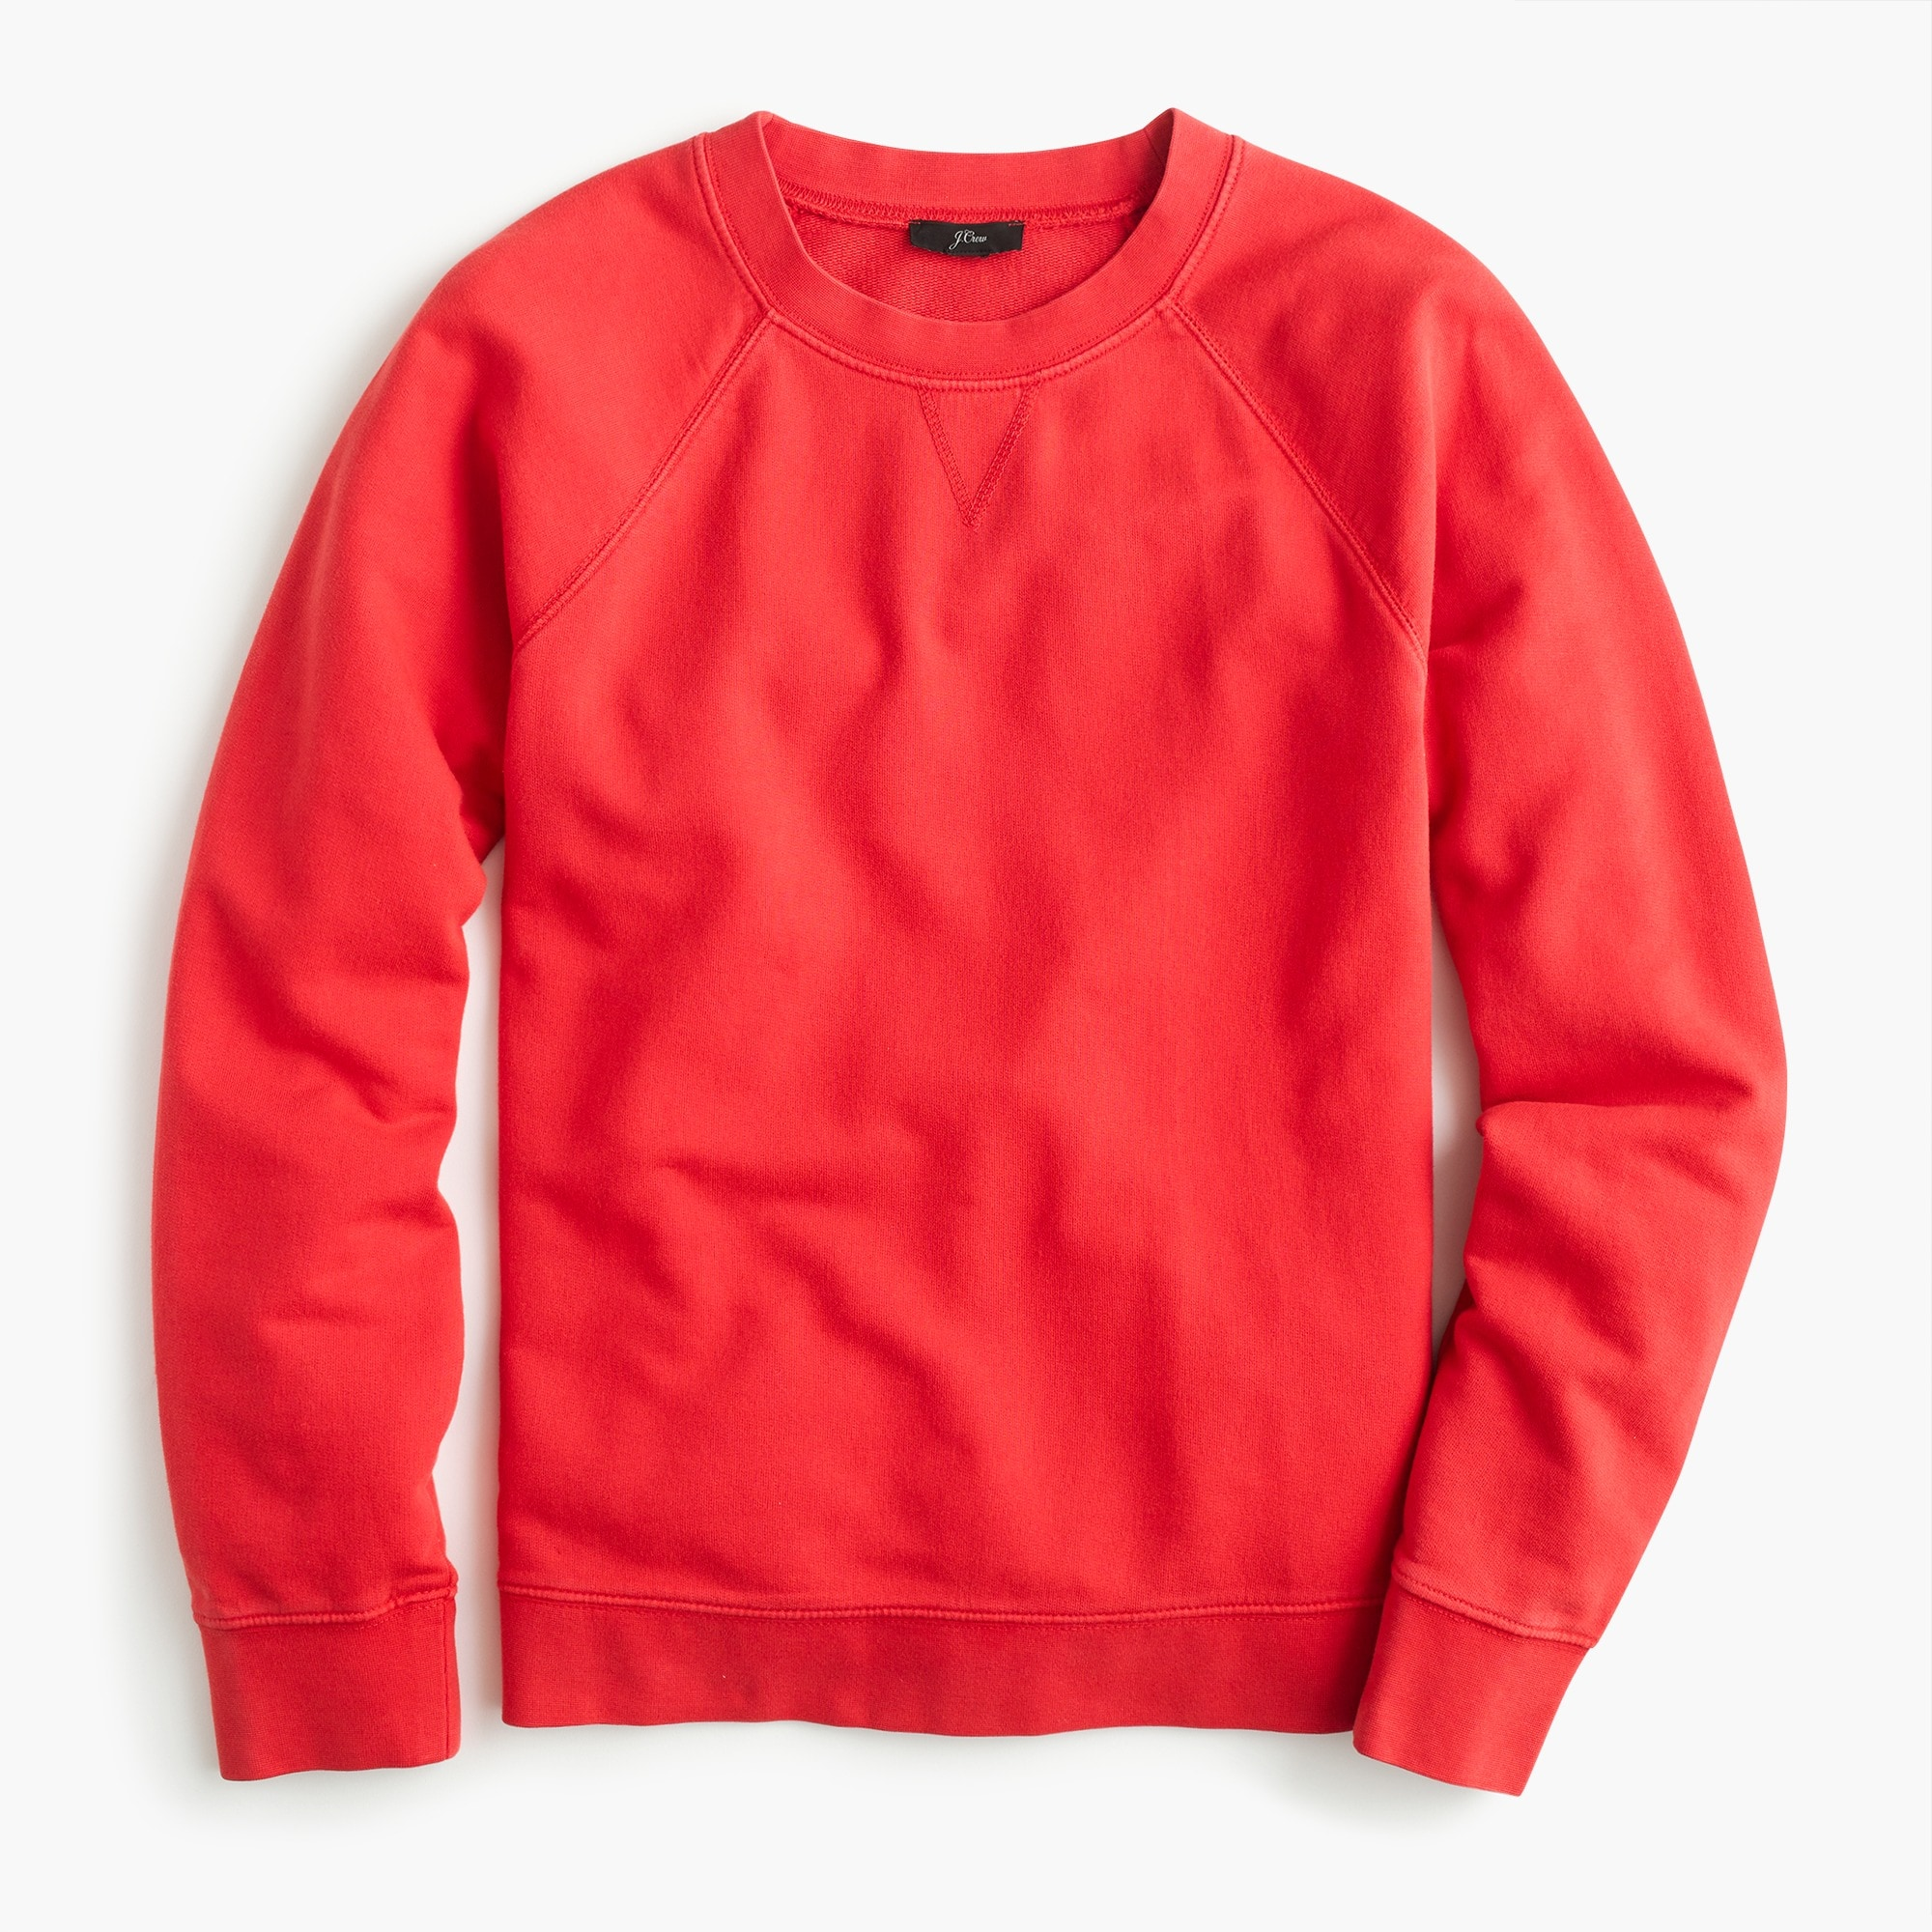 womens Garment-dyed crewneck sweatshirt